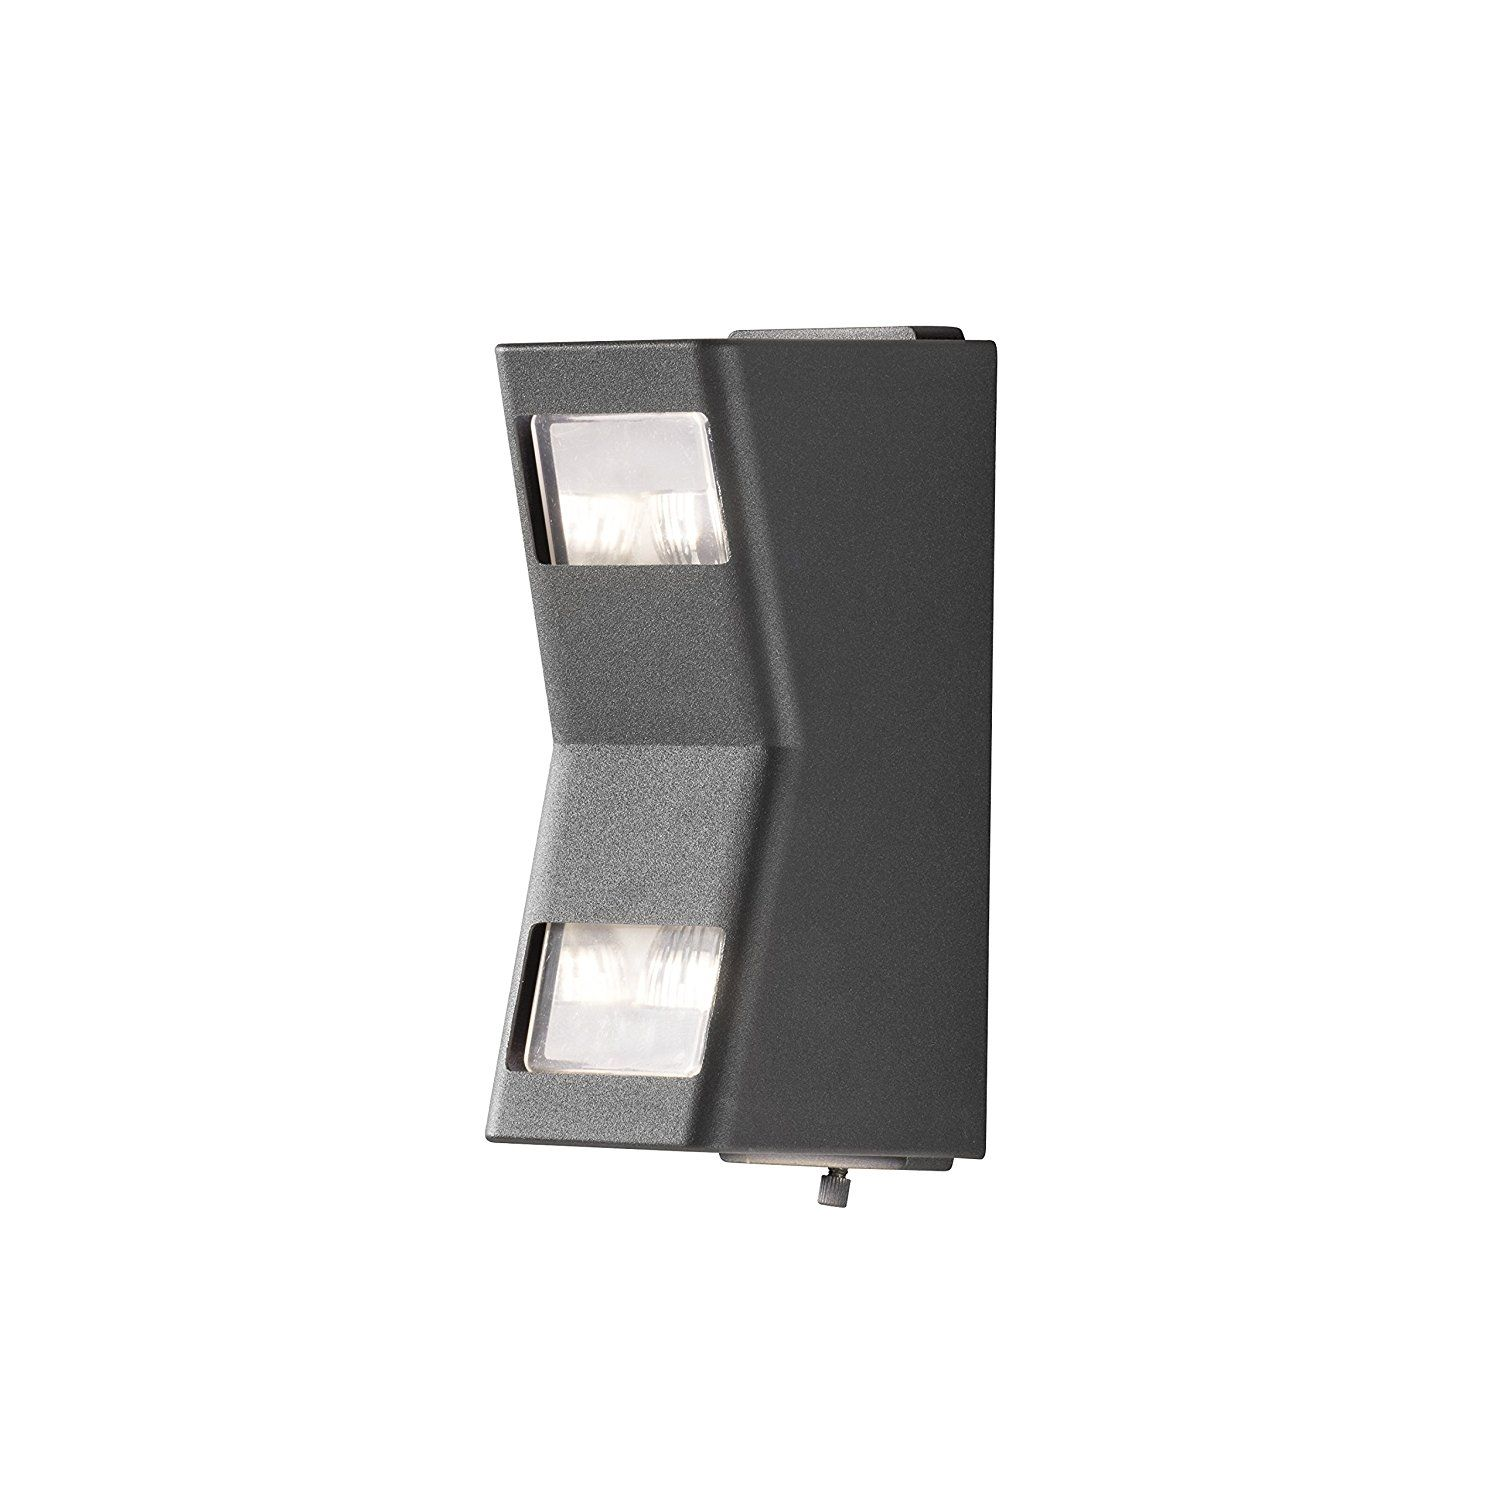 Konstsmide potenza easy fit wall light up down anthracite